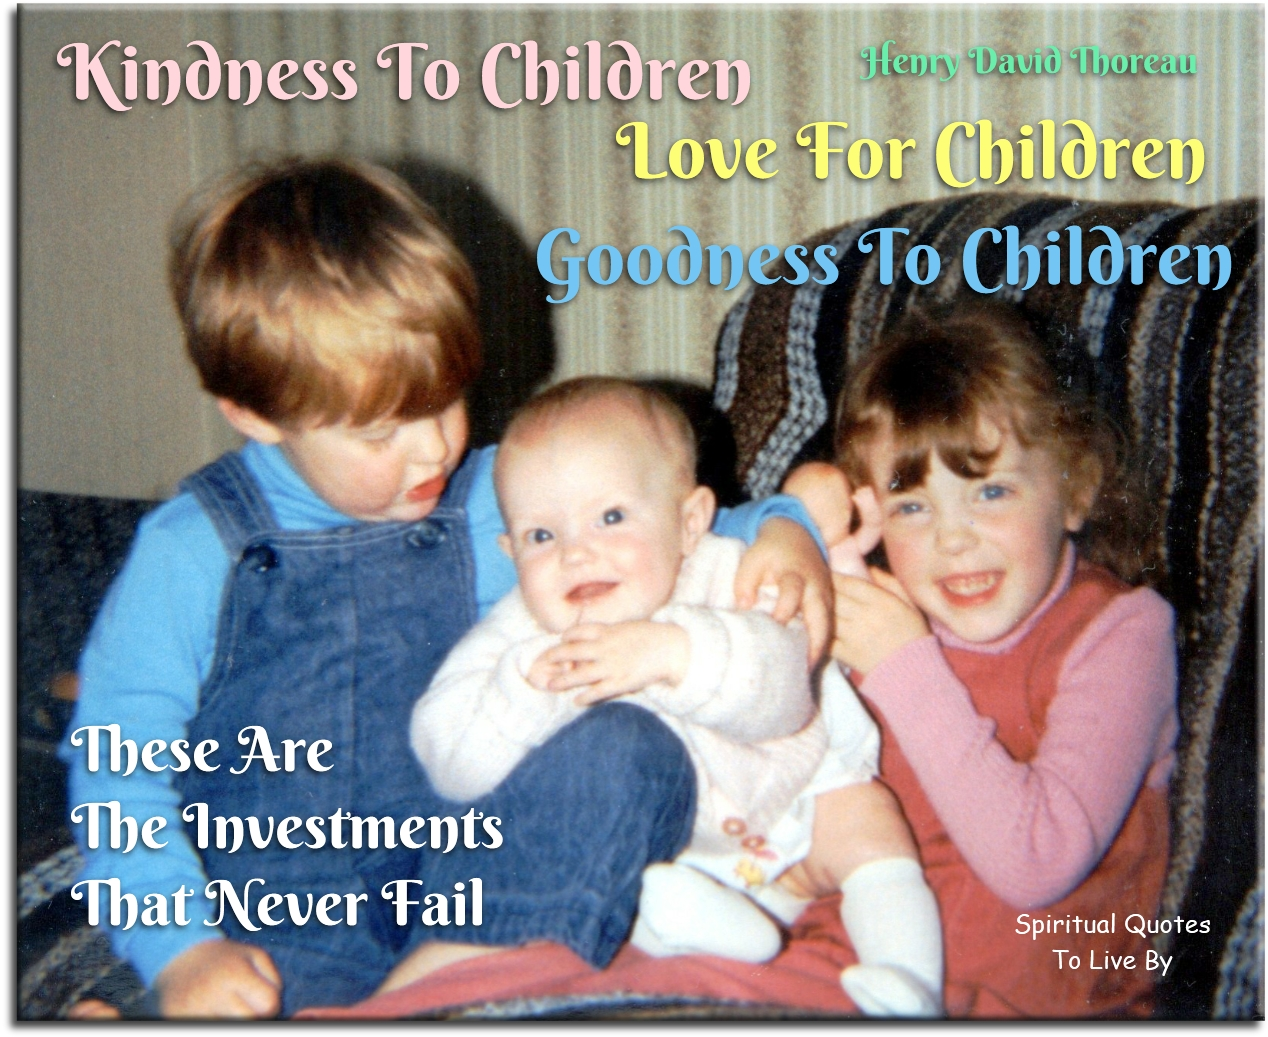 Henry David Thoreau quote: Kindness to children Love for children. Goodness to children… These are the only investments that never fail. - Spiritual Quotes To Live By